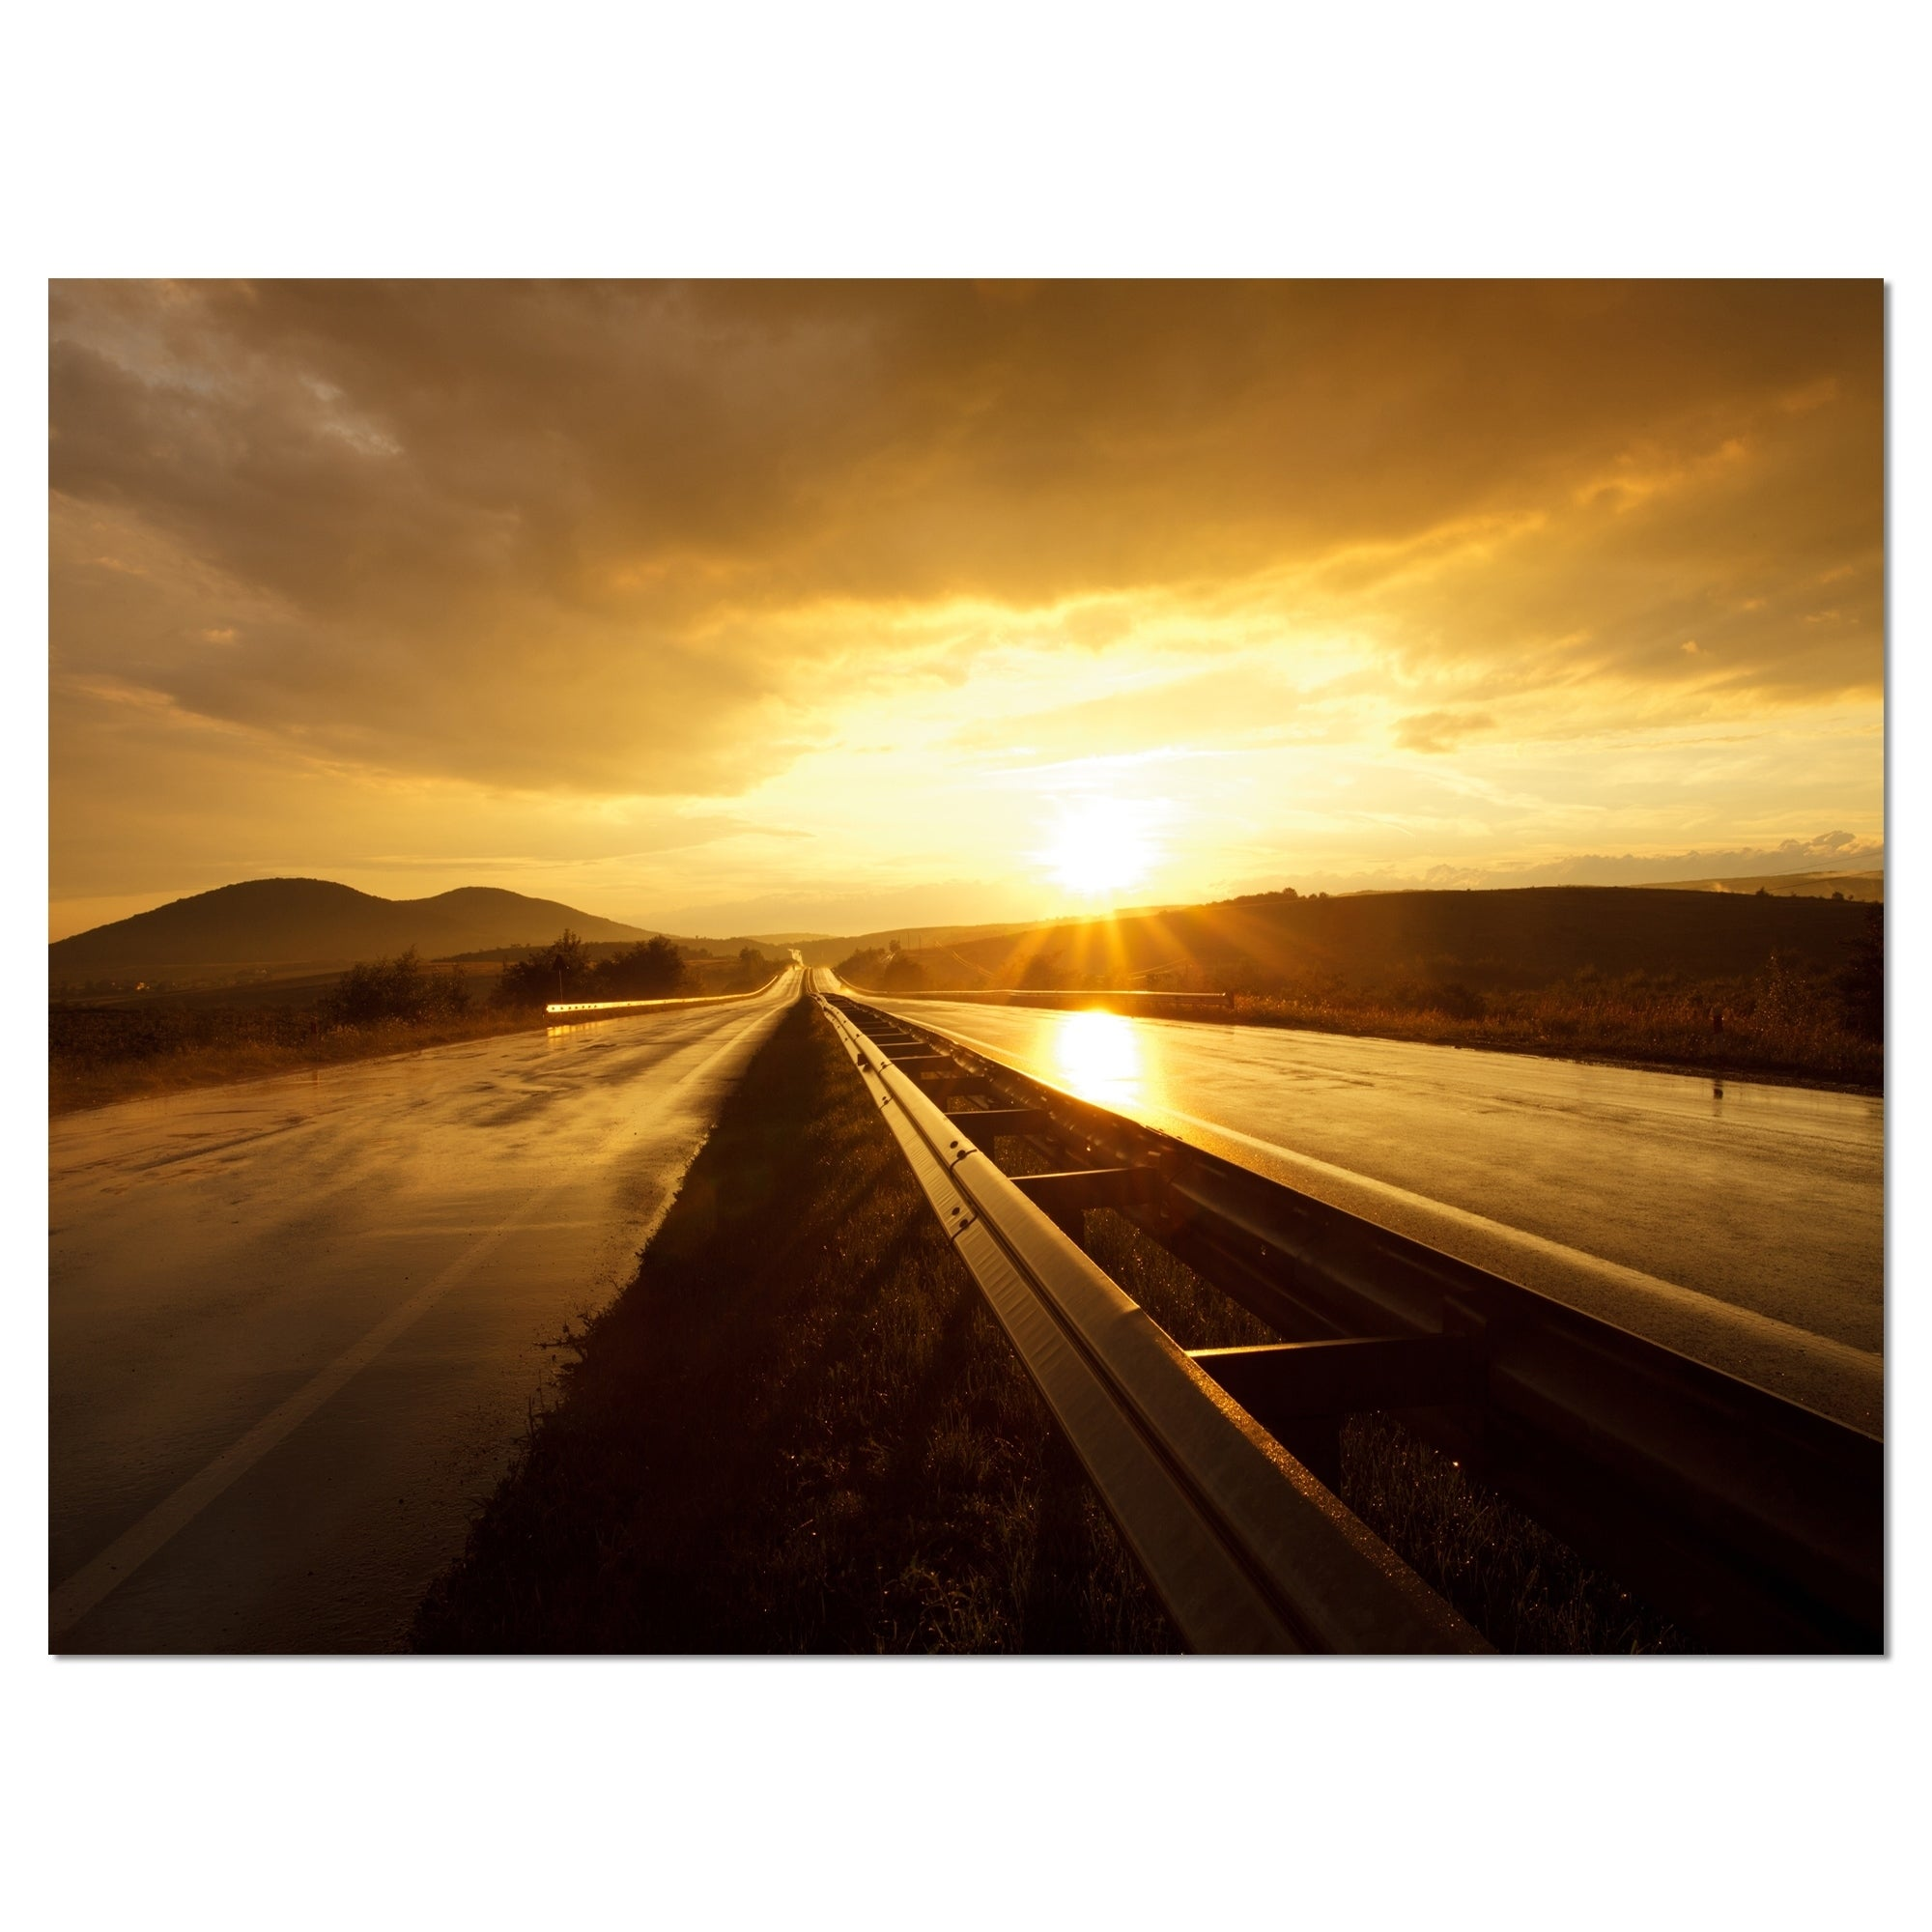 Wet After Rain Road at Sunset - Extra Large Wall Art Landscape ...